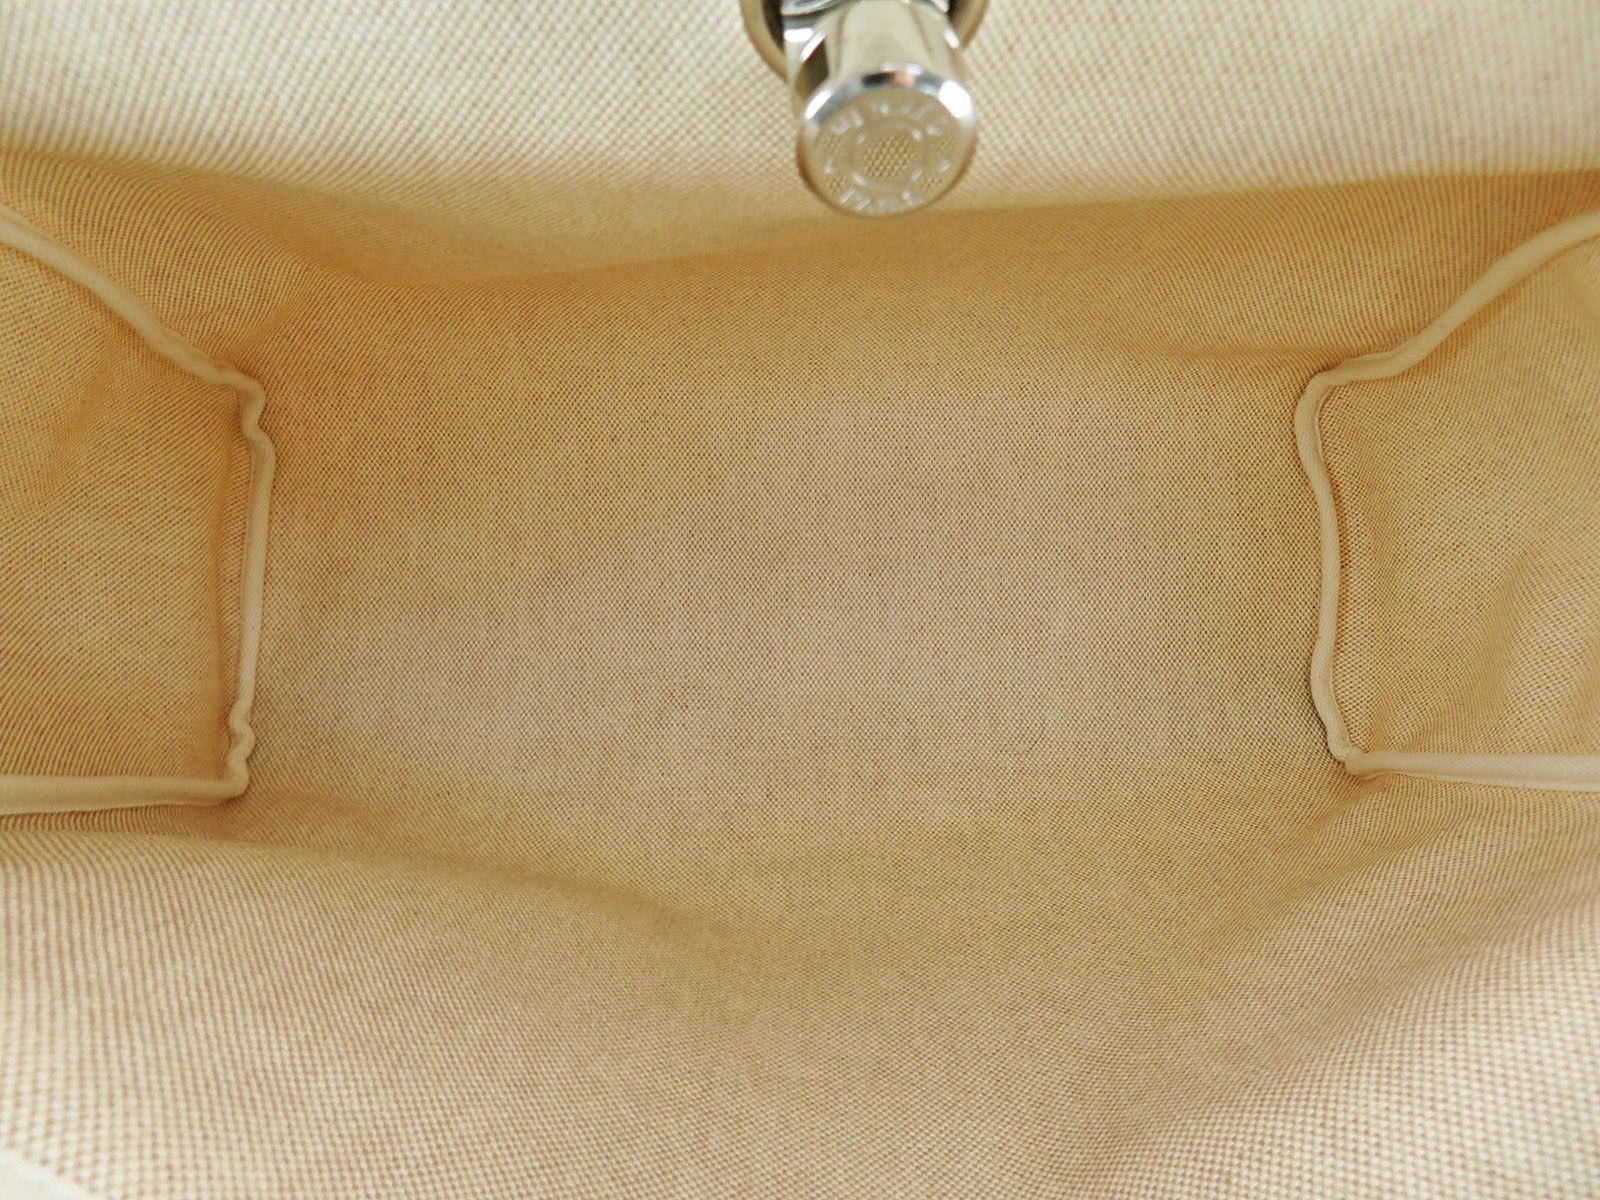 Auth HERMES Her Bag 2 in 1 Beige Canvas and Leather Hand Shoulder Bag #31320 image 8